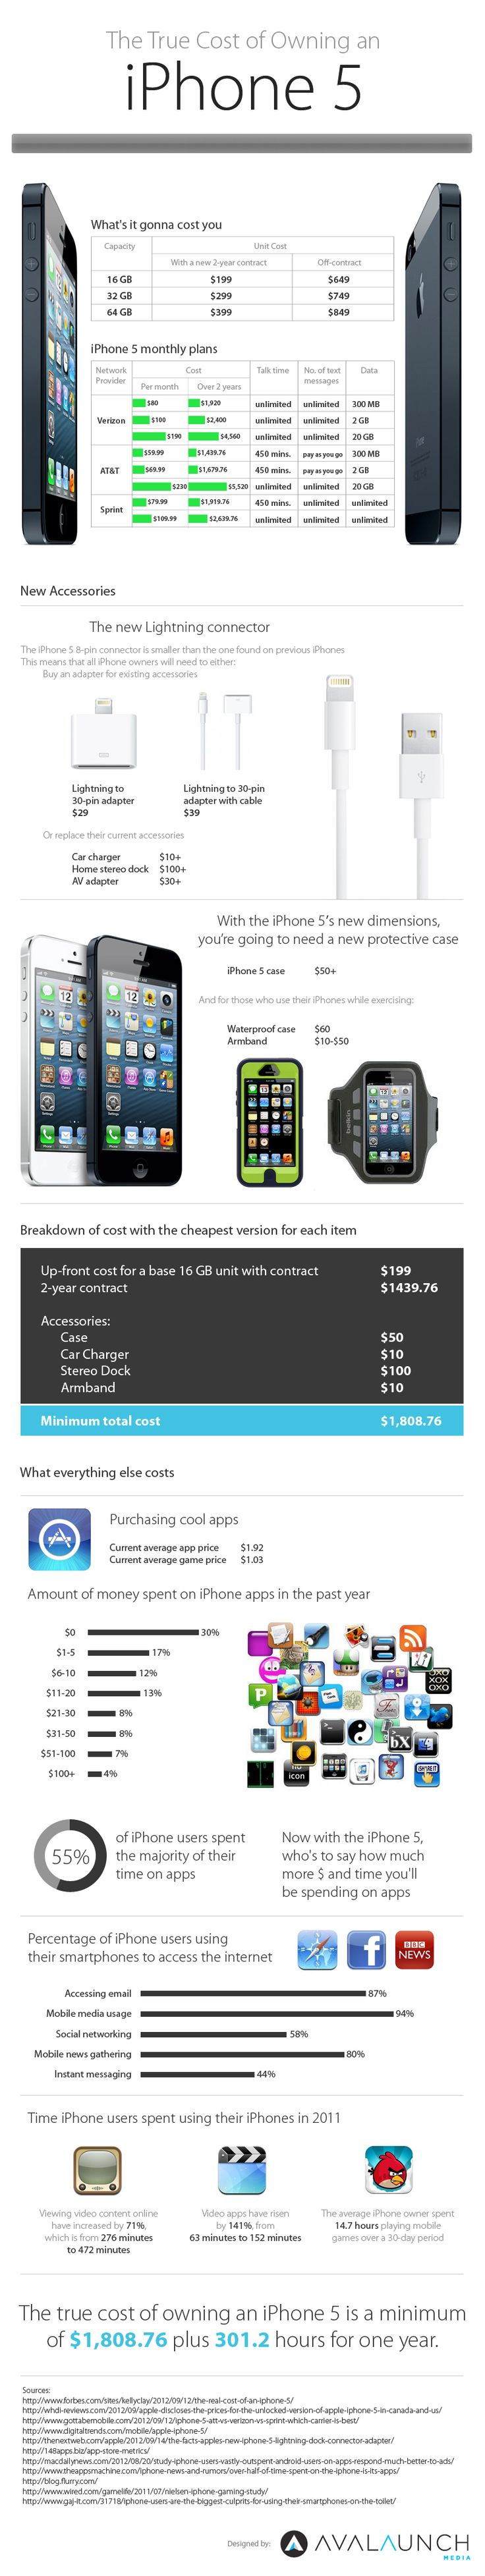 The Real Cost of Owning an iPhone 5